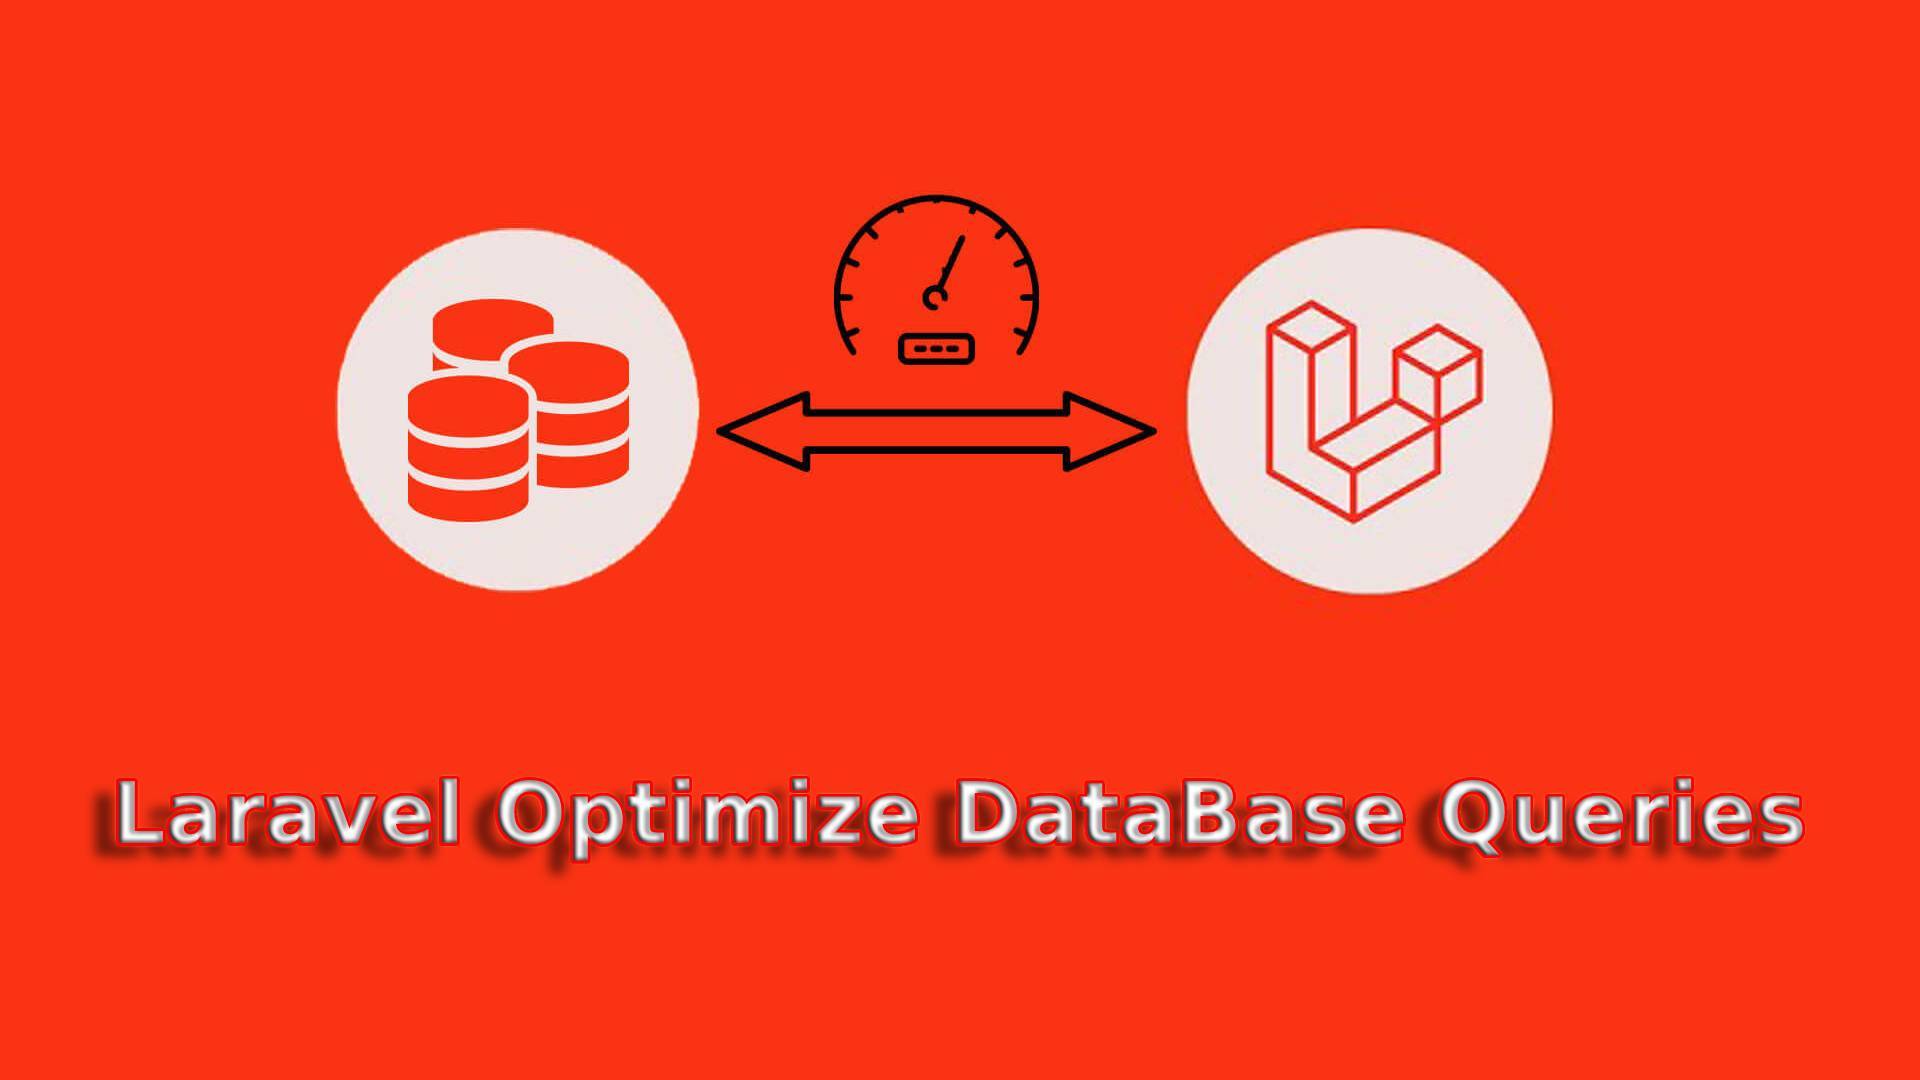 How to Optimize Database Queries in Laravel?